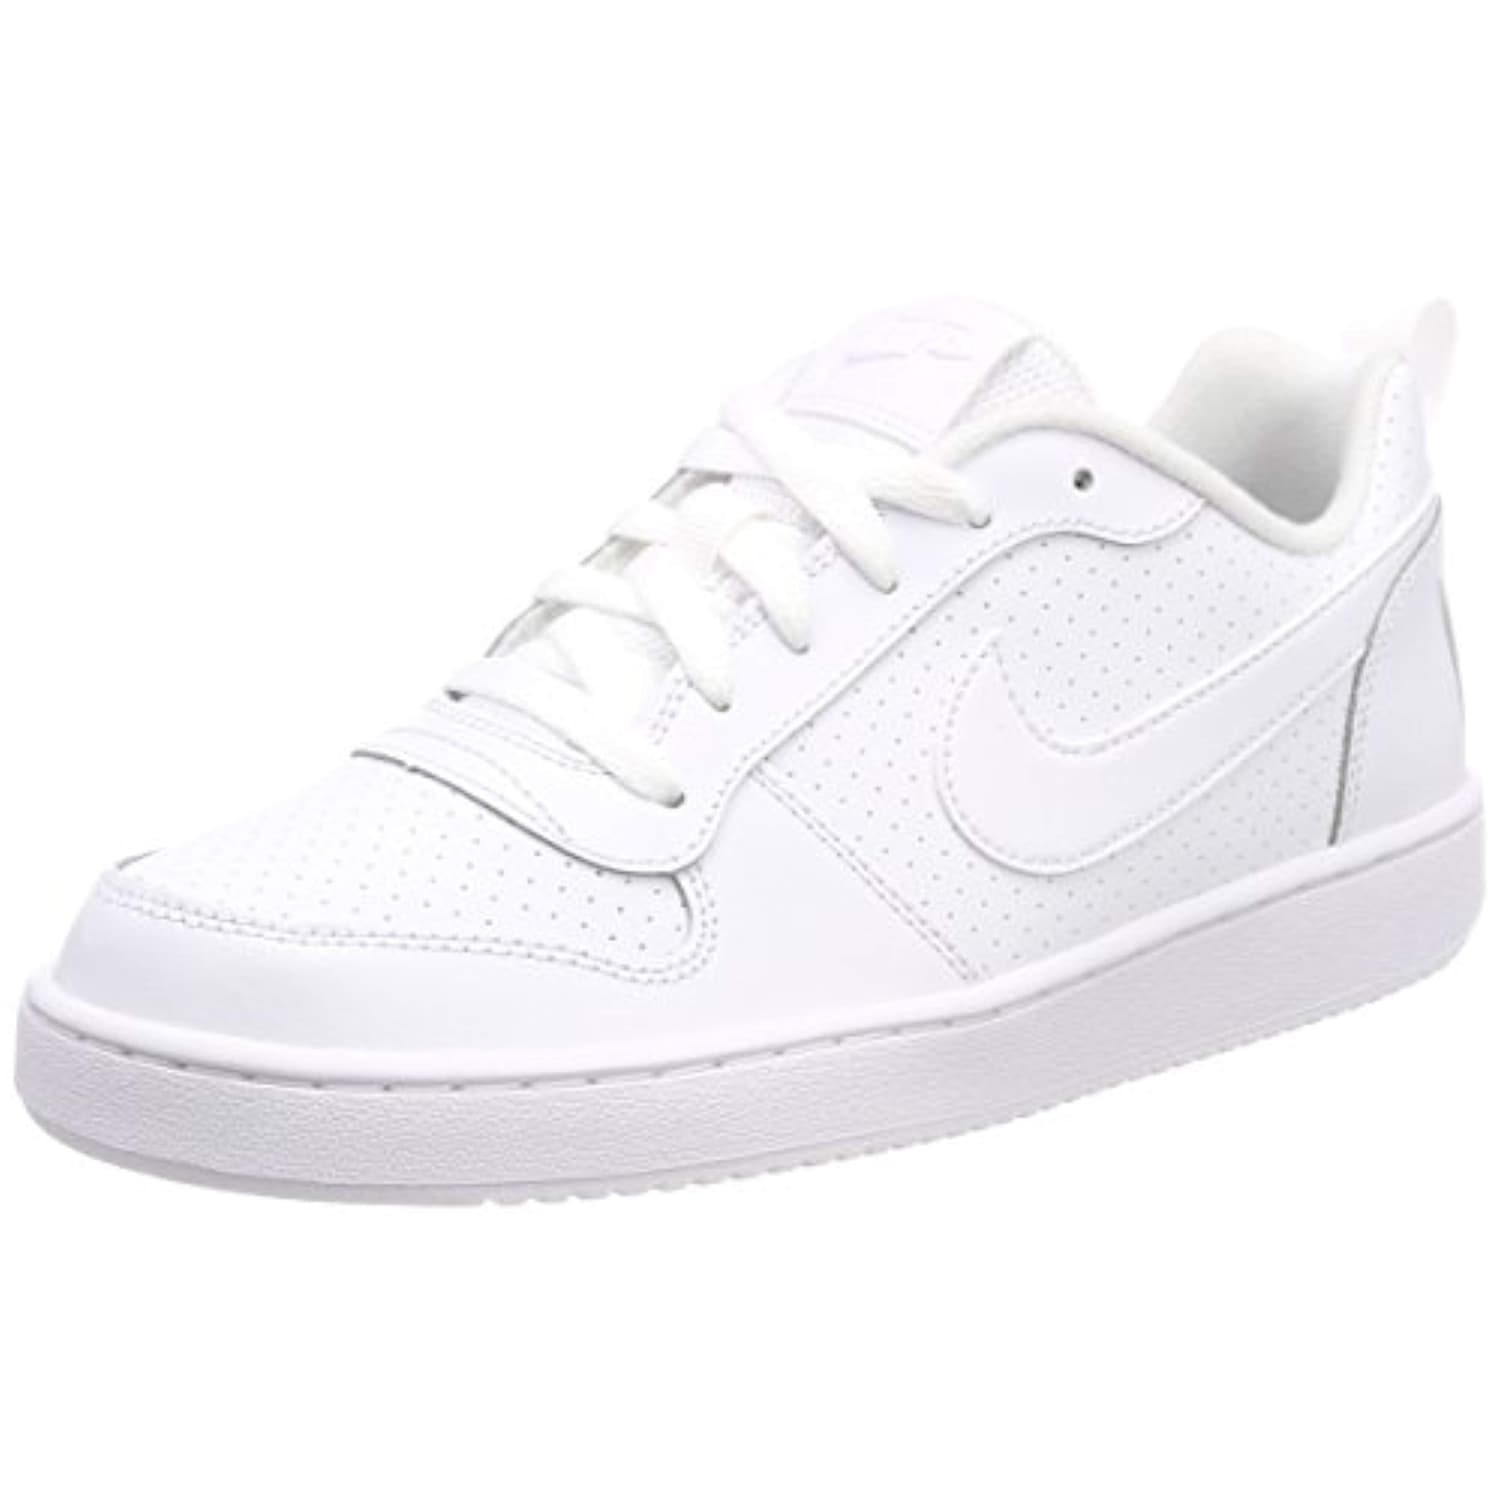 Nike Youths Court Borough Low White Leather Trainers 40 EU